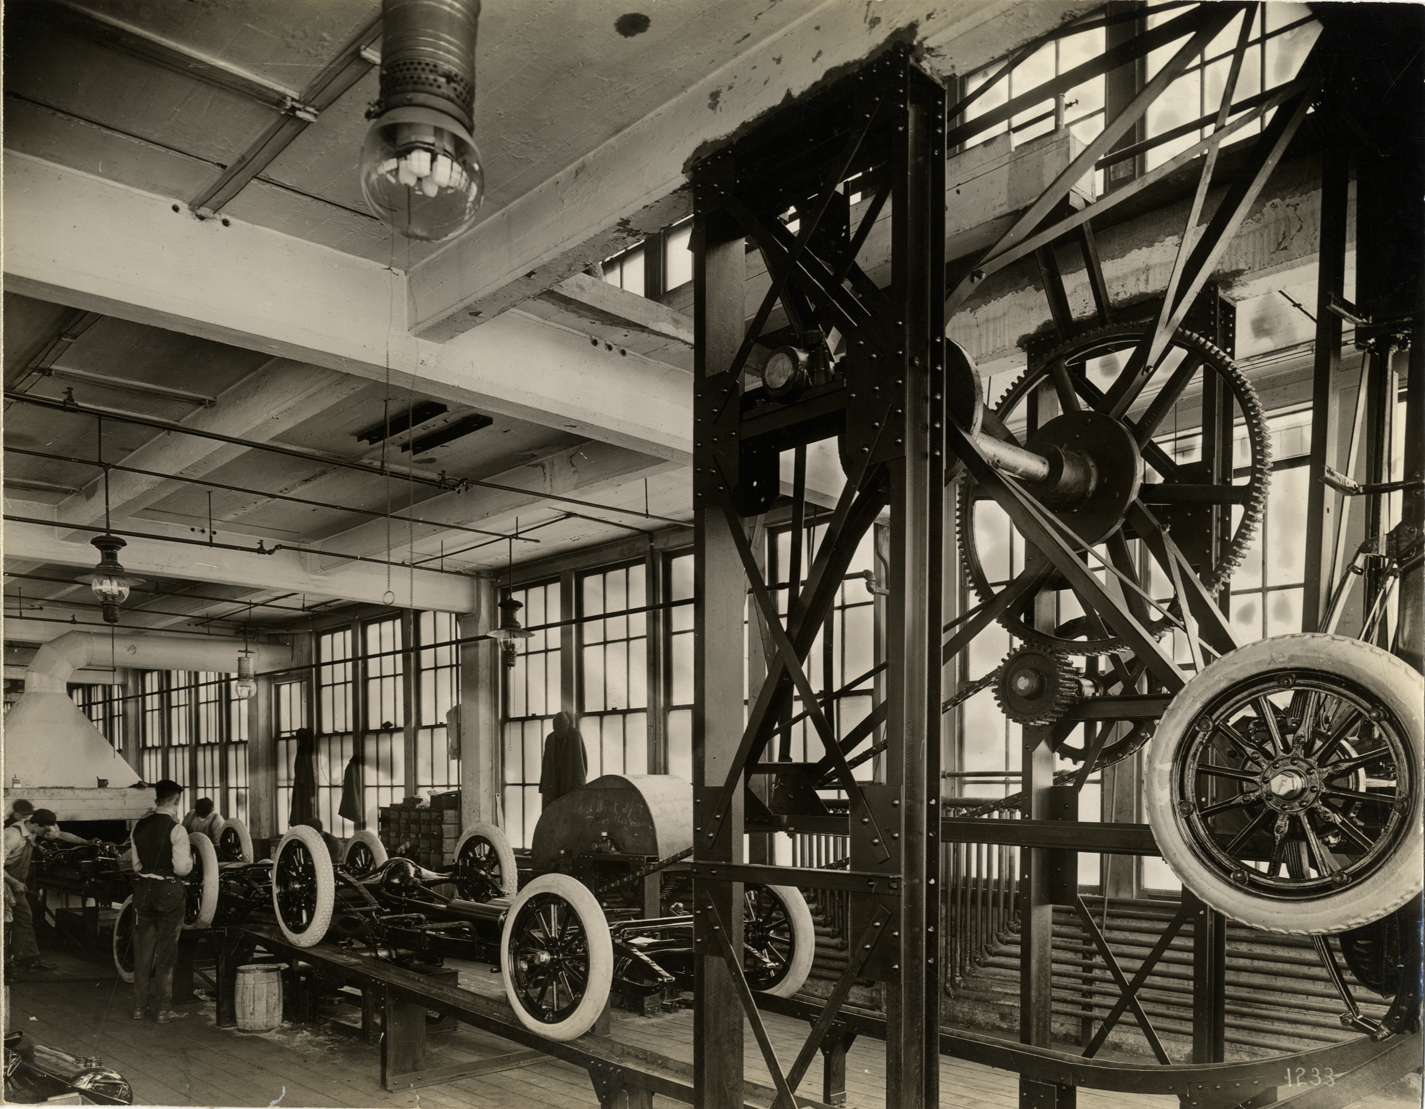 Automobile chassis on elevating conveyor, Chalmers Motor Company factory